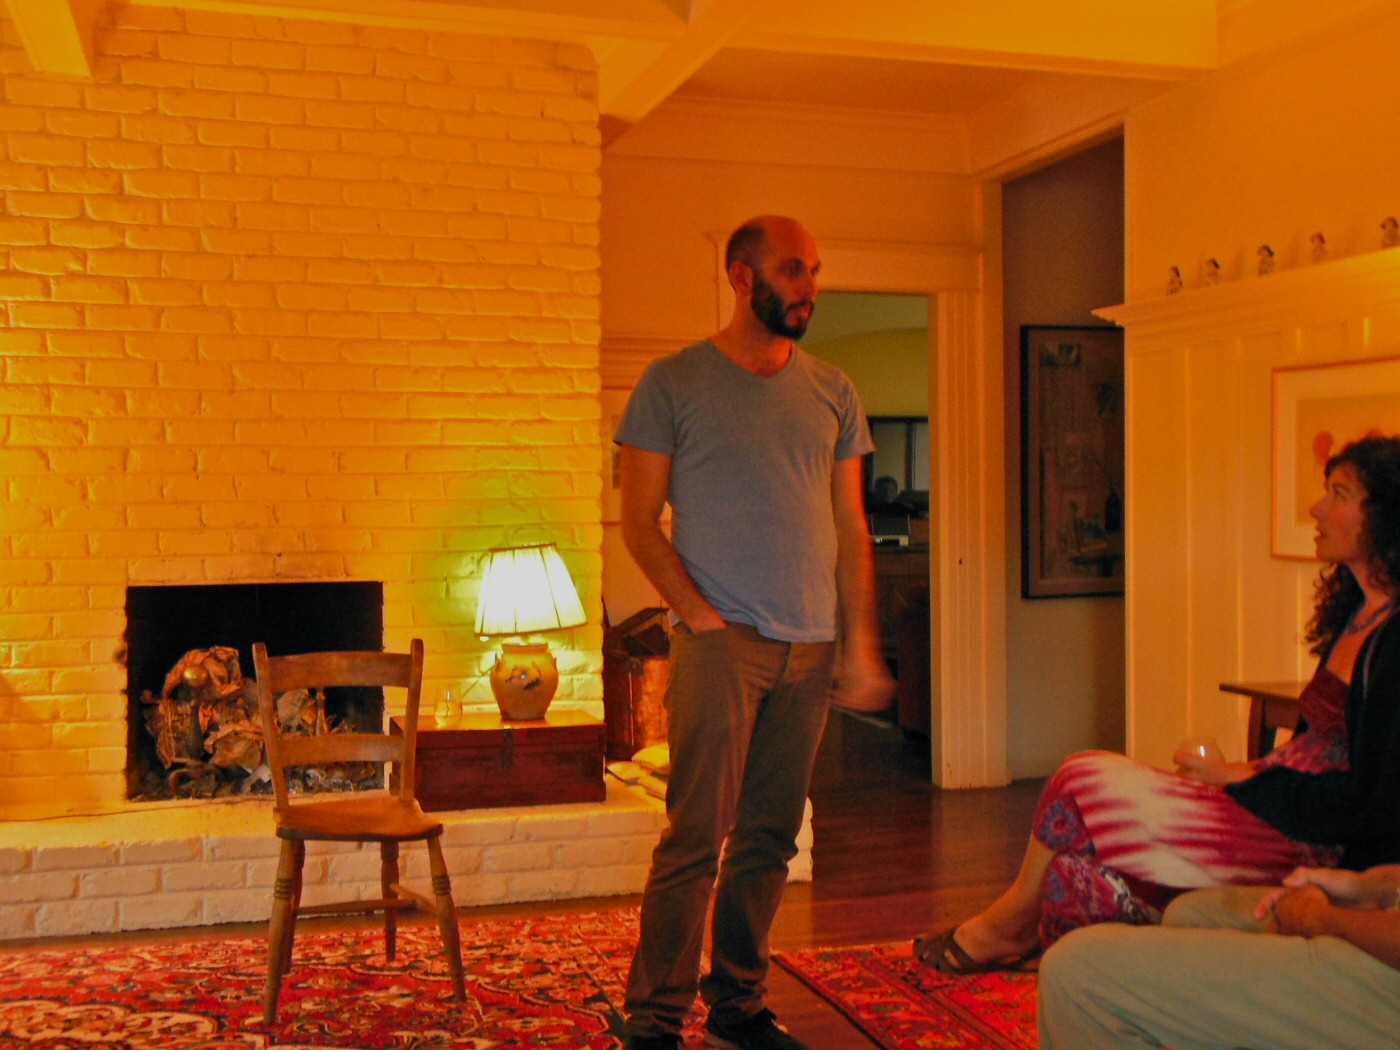 Wiley Naman Strasser (Peter) in Wolves, by Paul Heller; dir. Rem Myers. Lupine Productions, San Francisco. Living room, Oakland, CA. August 2015. Photo P. Heller